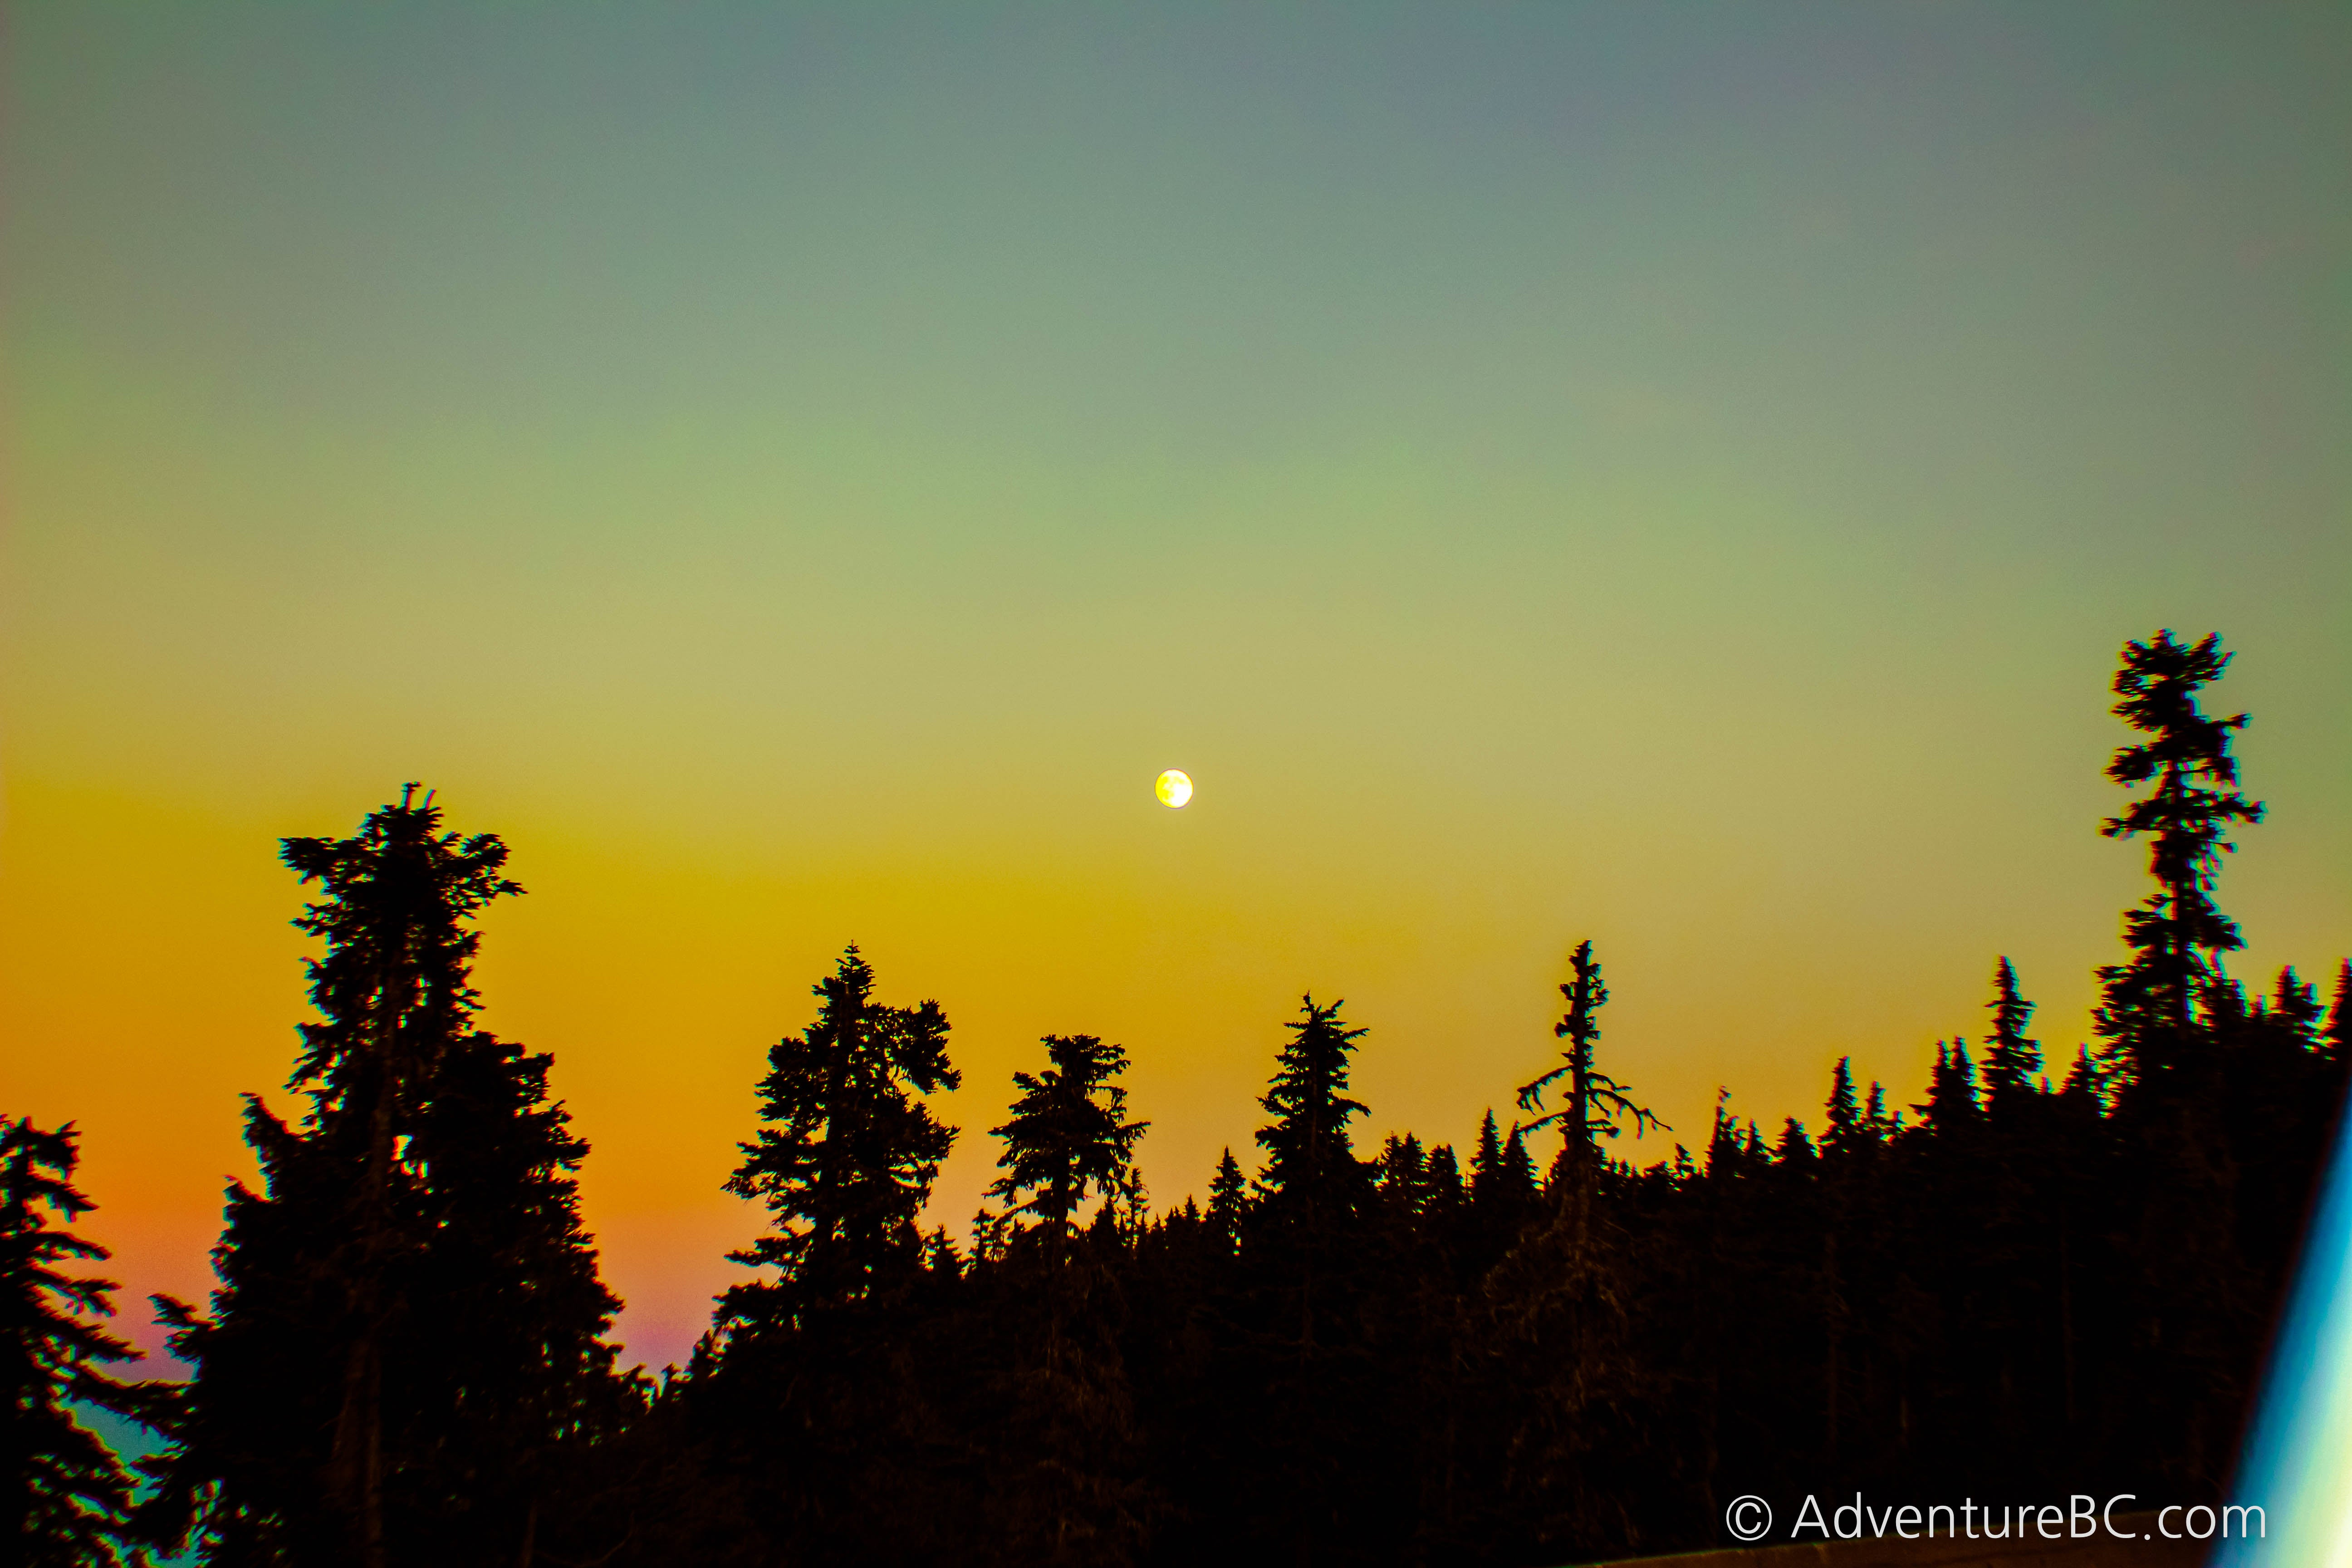 The moon was guiding me in full force up the road to our comfy summer condo on Mount Washington.